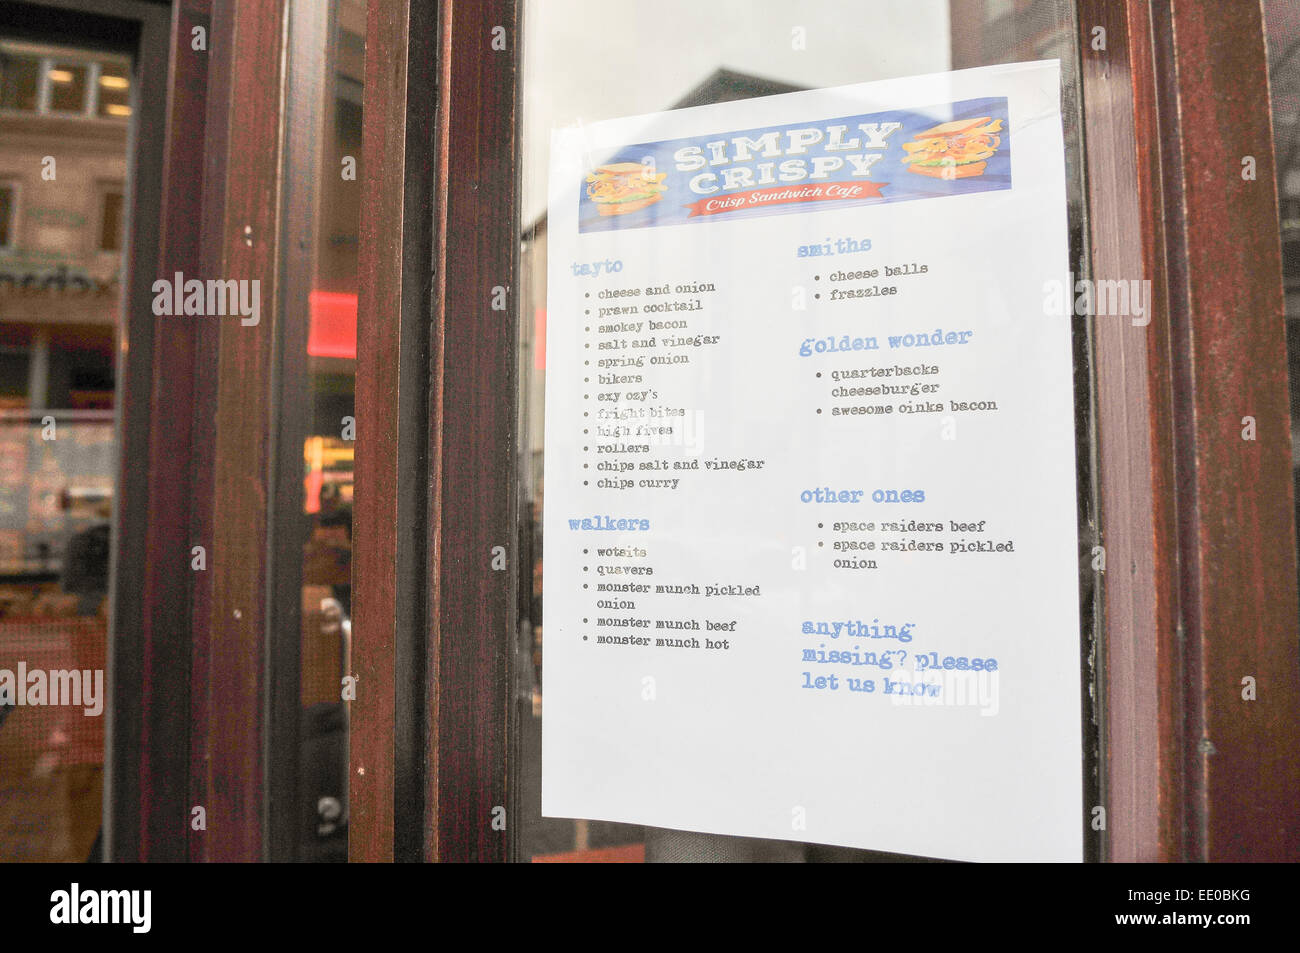 Belfast, Northern Ireland. 12th January, 2015. A menu at the entrance of the world's first 'Crisp Sandwich' - Stock Image